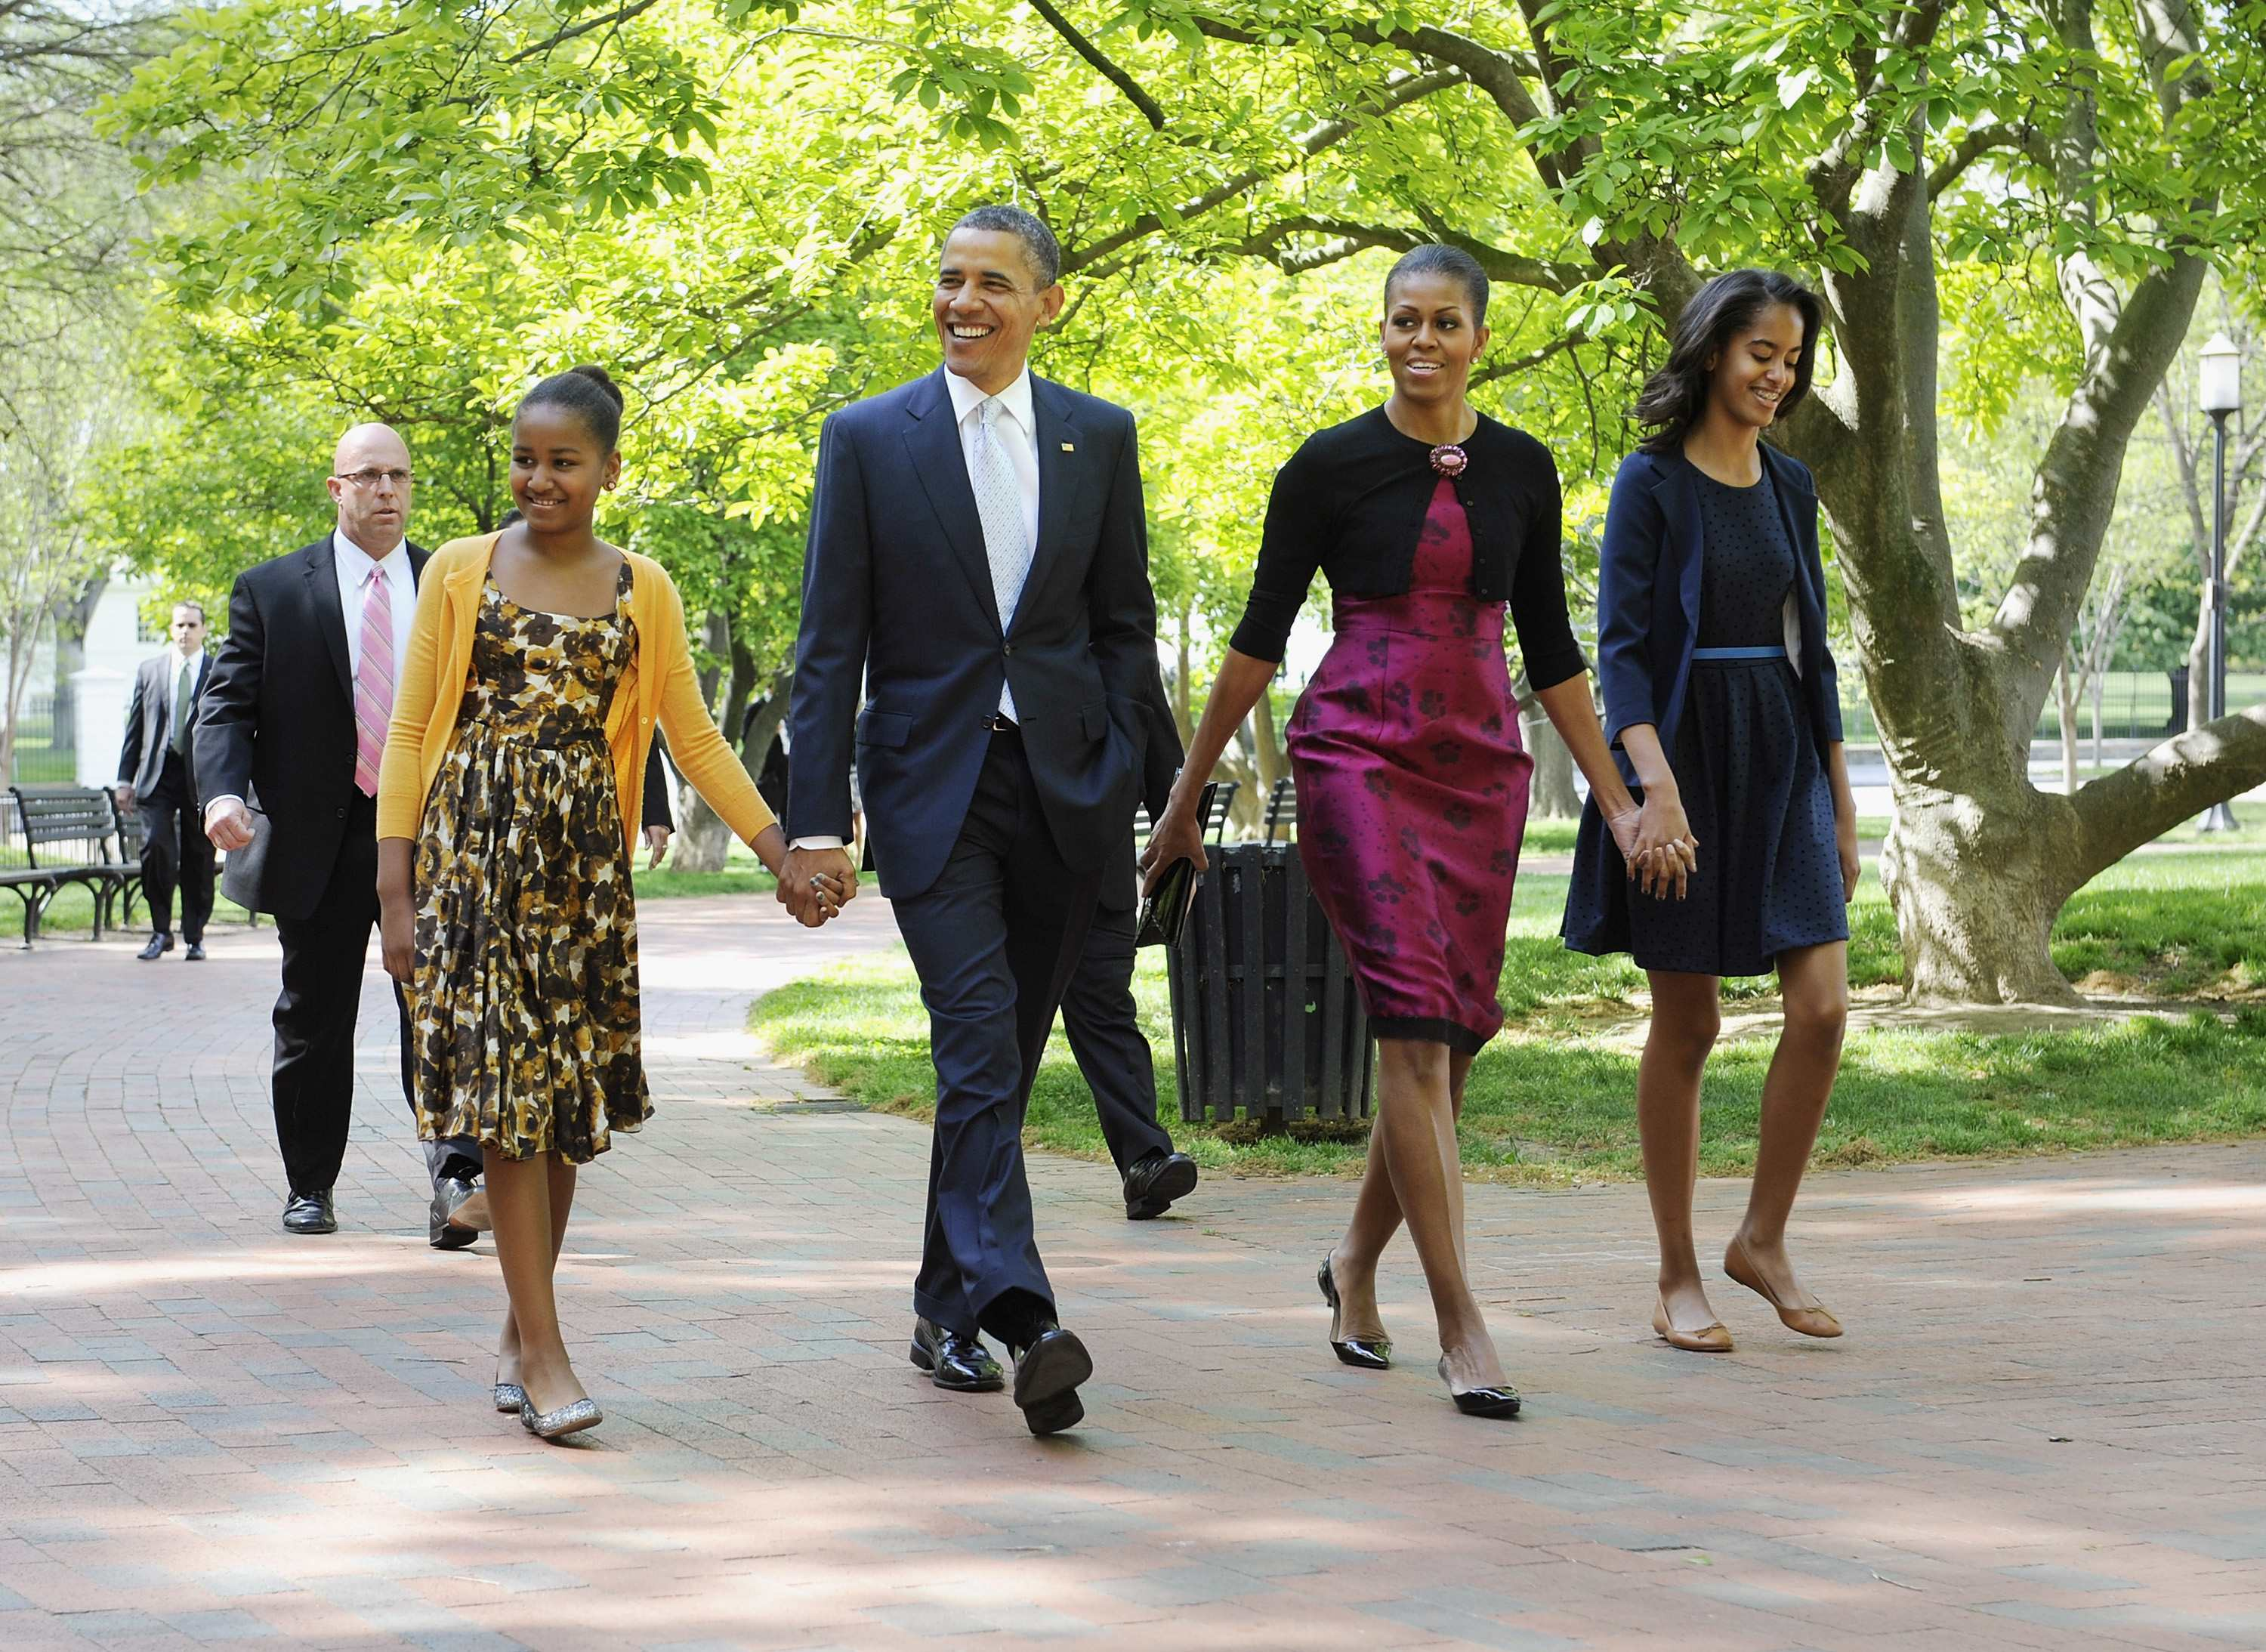 The Ceaseless Beauty Of An African American Family In White House